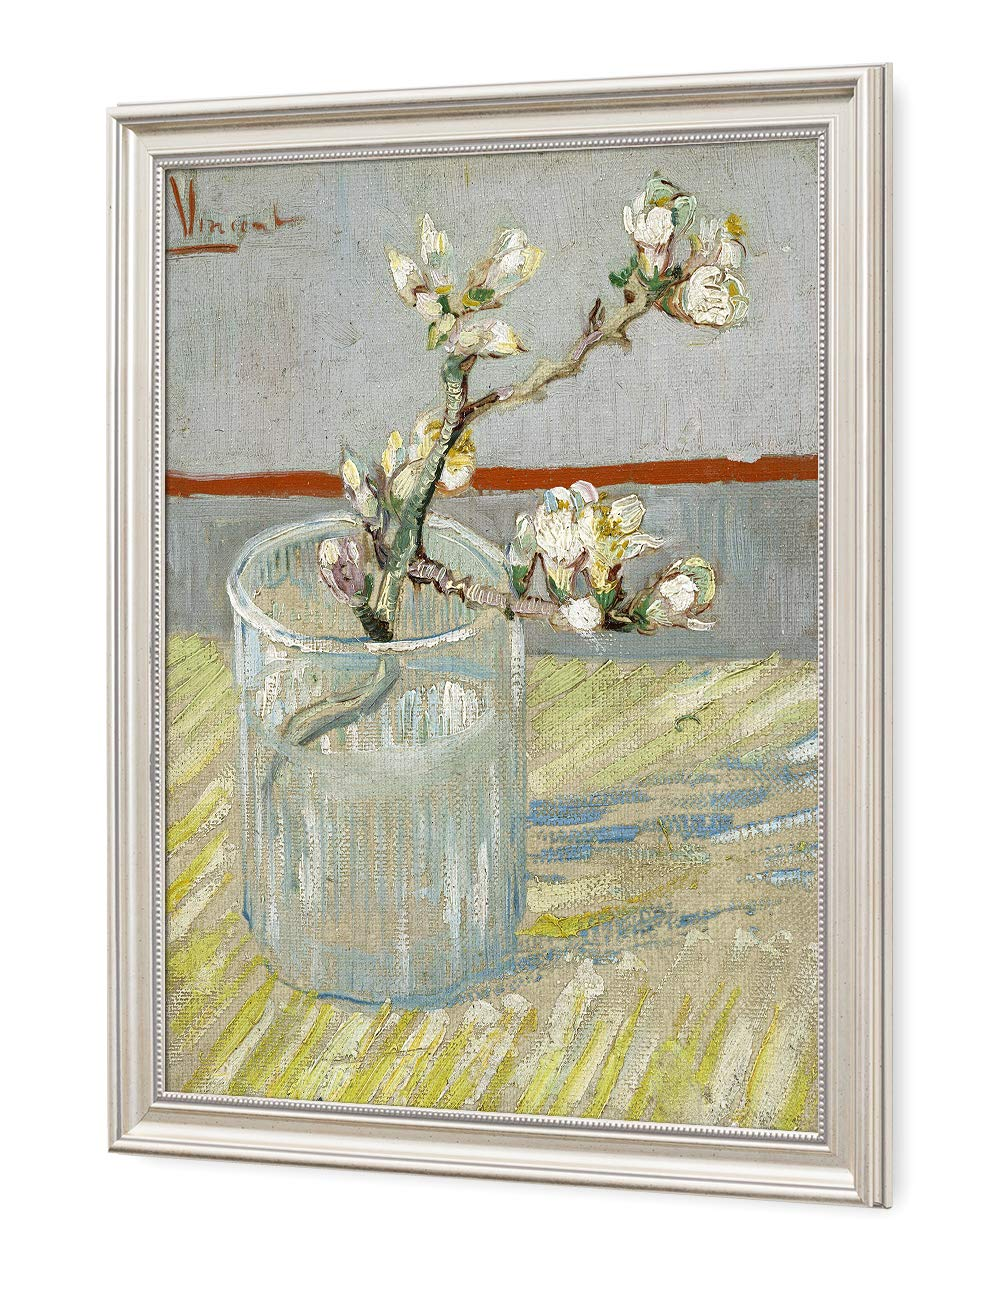 DECORARTS - Sprig of Flowering Almond Blossom in a Glass, Vincent Van Gogh Art Reproduction. Giclee Print& Framed Art for Wall Decor. 20x16, Framed Size: 23x19